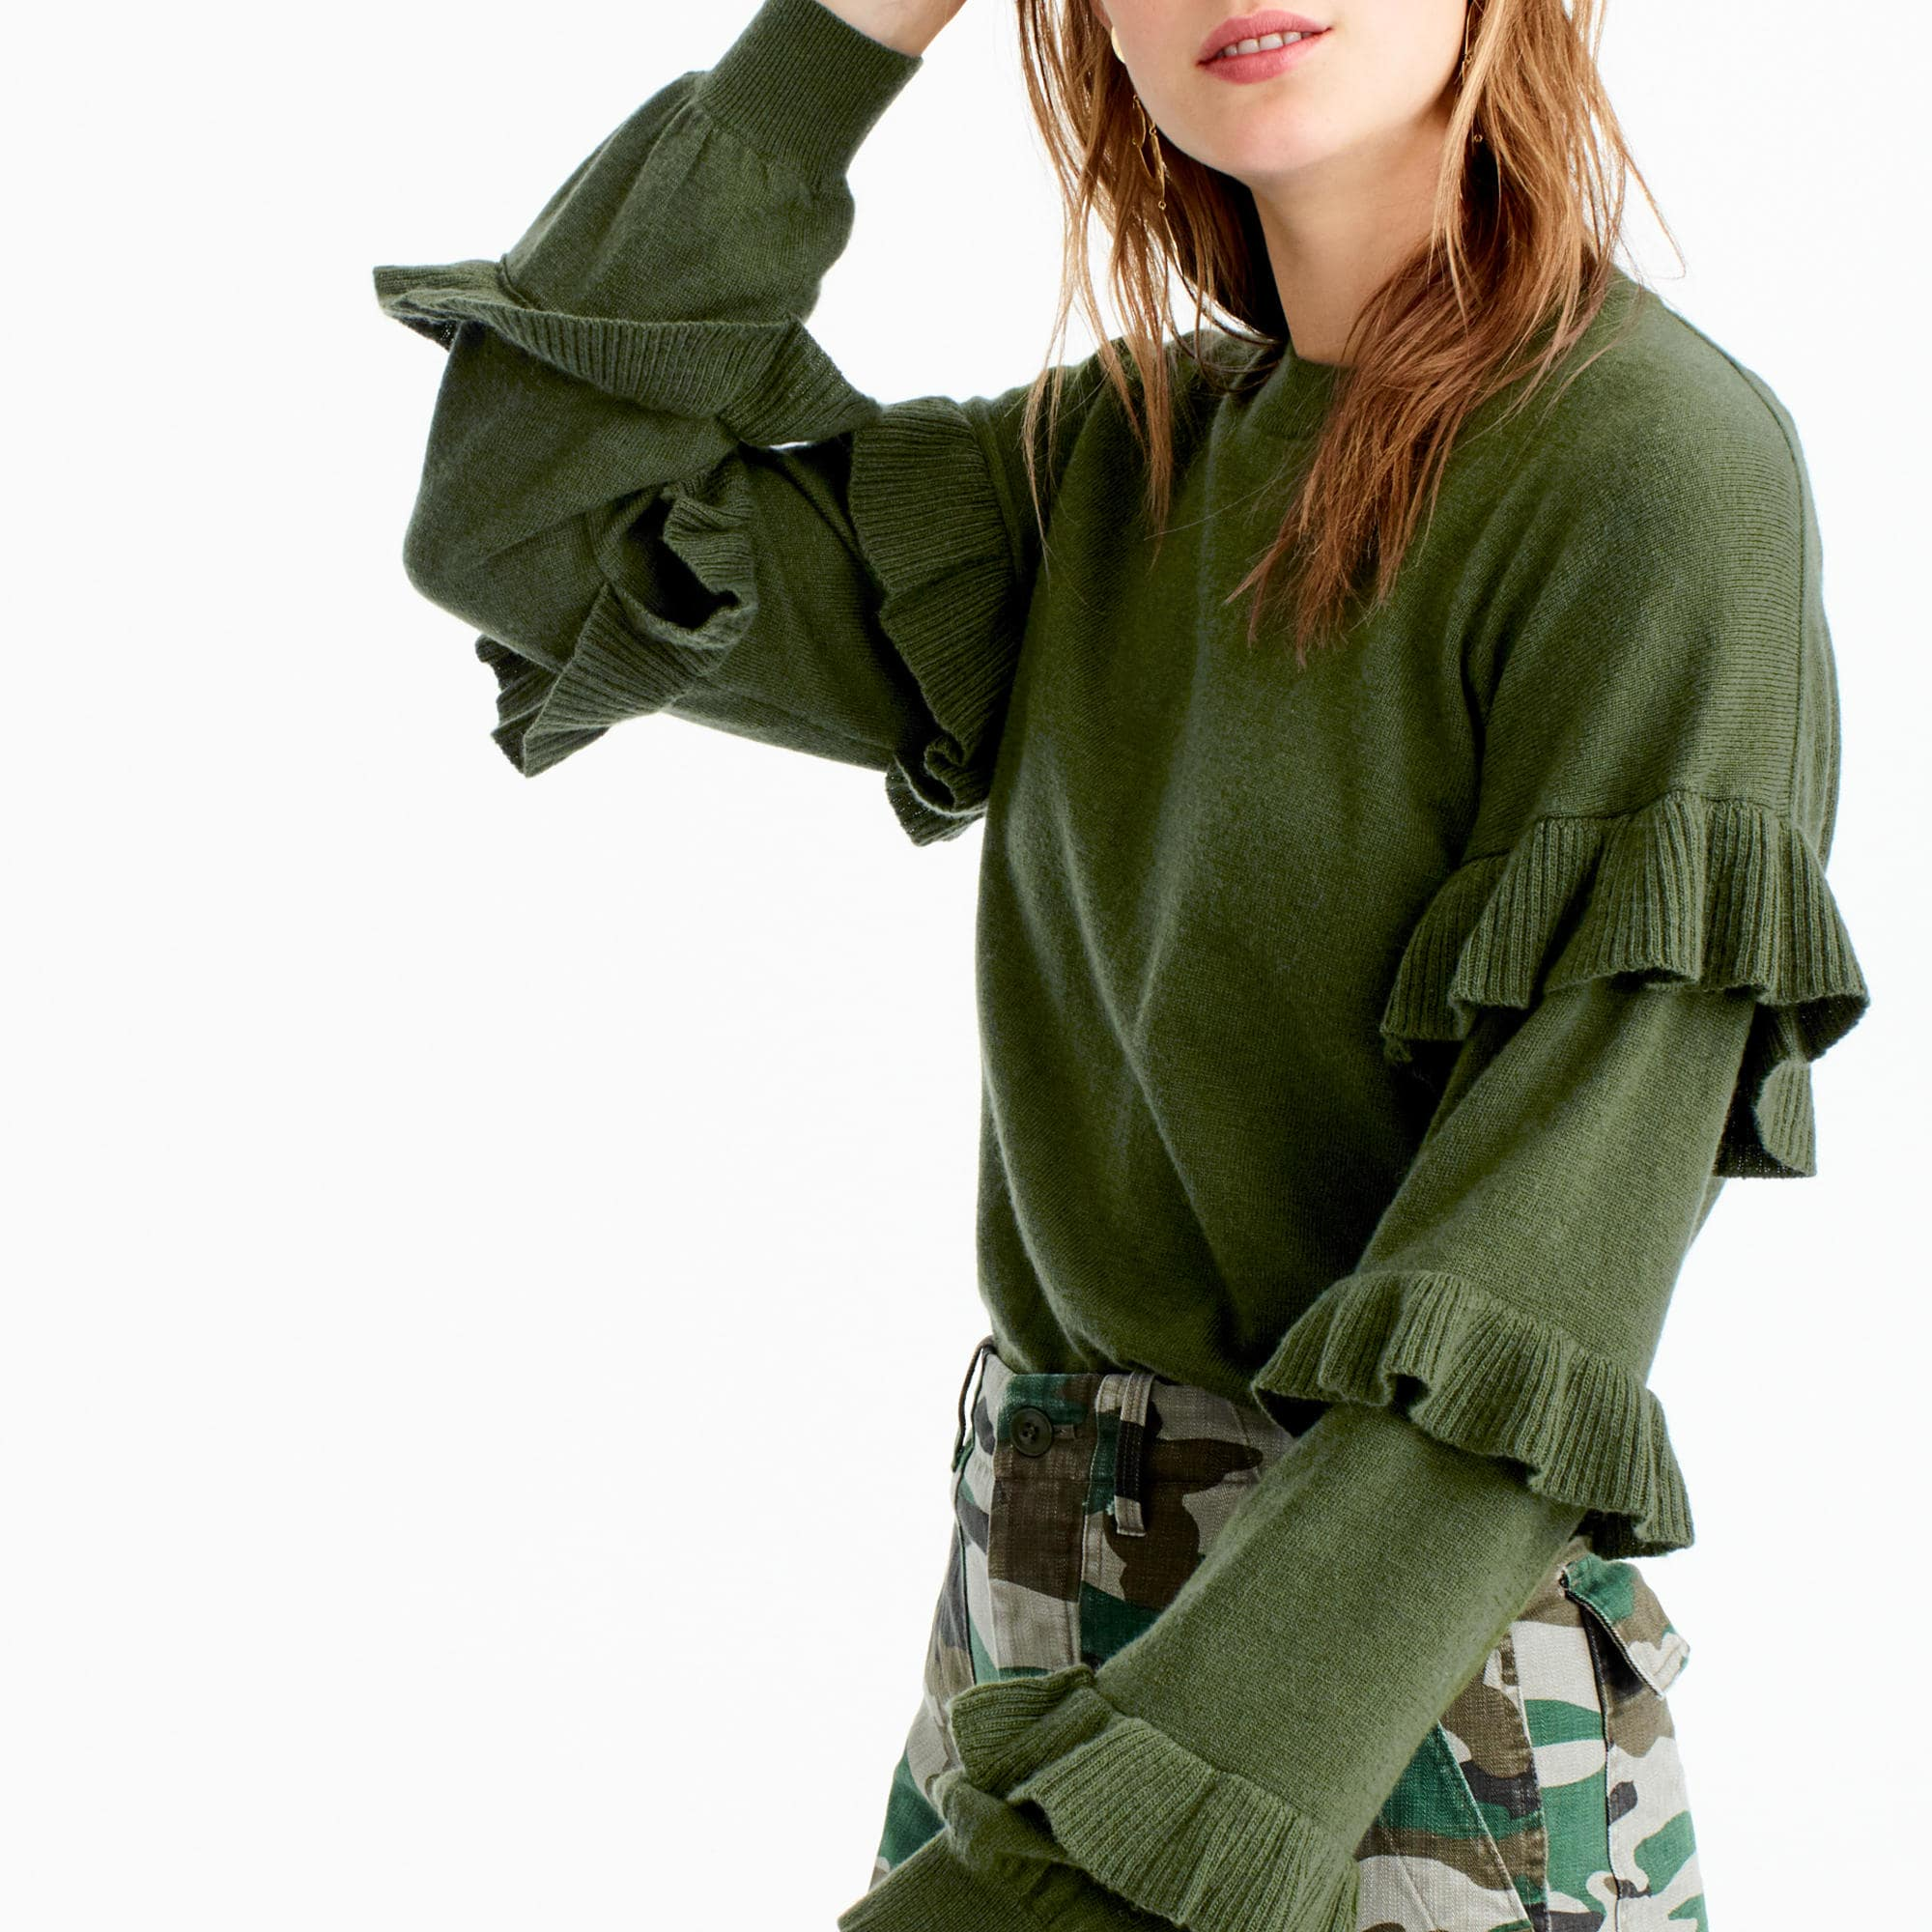 994a1e4b9 J.Crew Sweater With Ruffle Sleeves  54.50. Add ruffles to any clothing item  and it instantly becomes a fashion-forward piece. This one sports an extra  soft ...